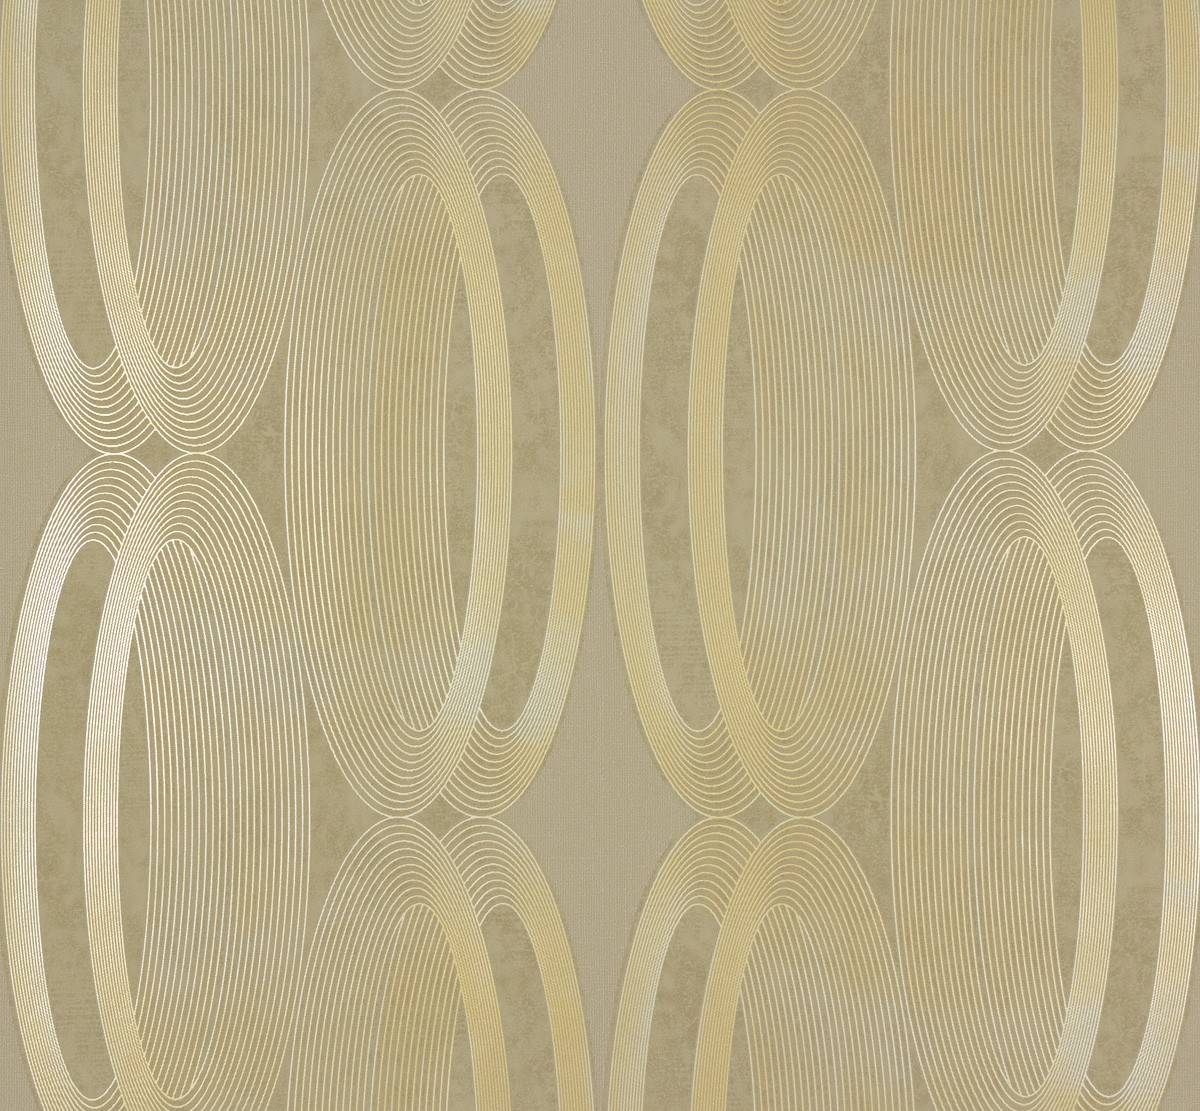 Marburg Tapeten Ornamental Home : Vliestapete Marburg Ornamental Home 55218 Design Kreise creme gold